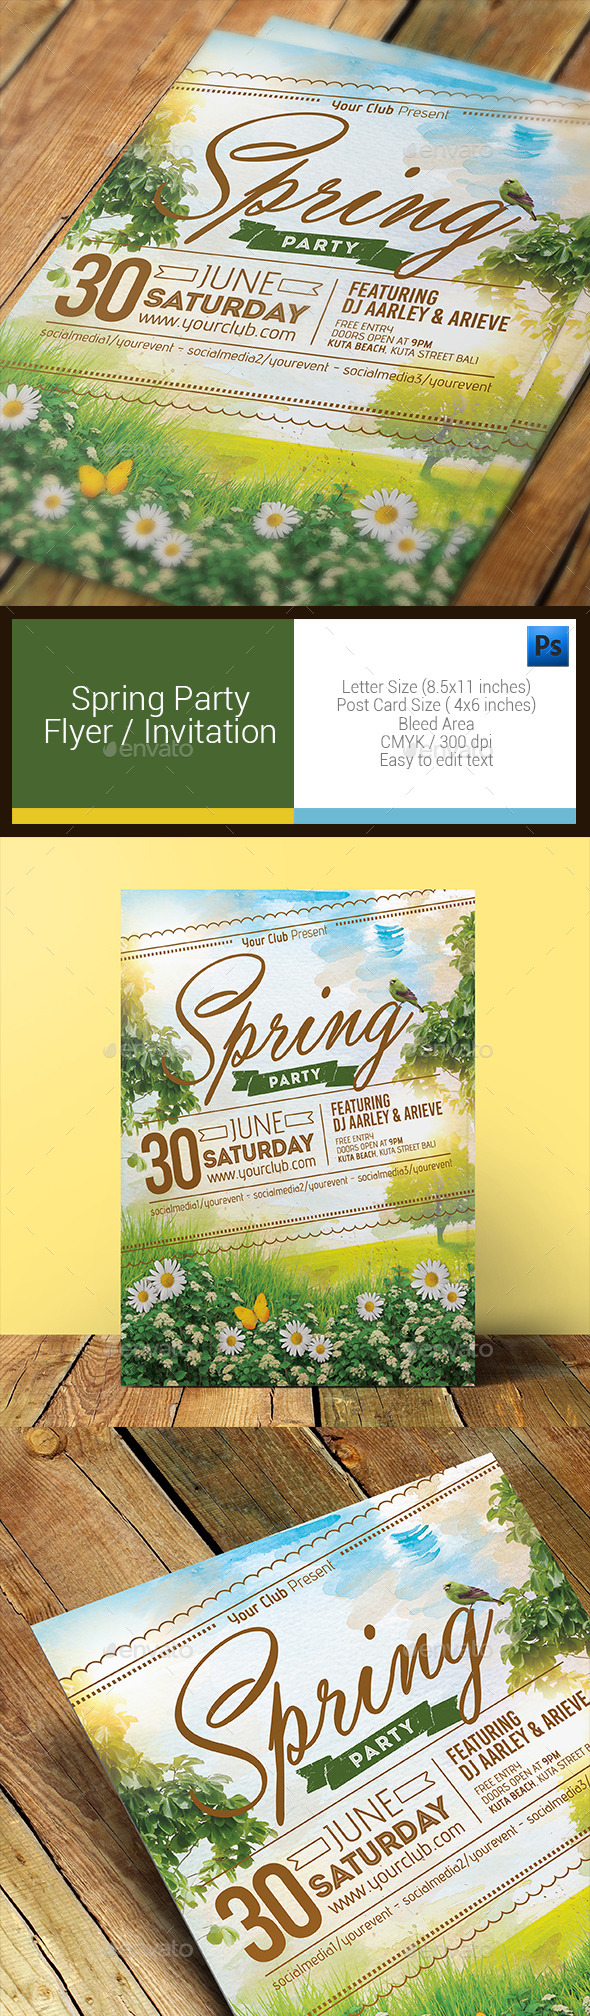 GraphicRiver Spring Party Flyer Invitation 11086093